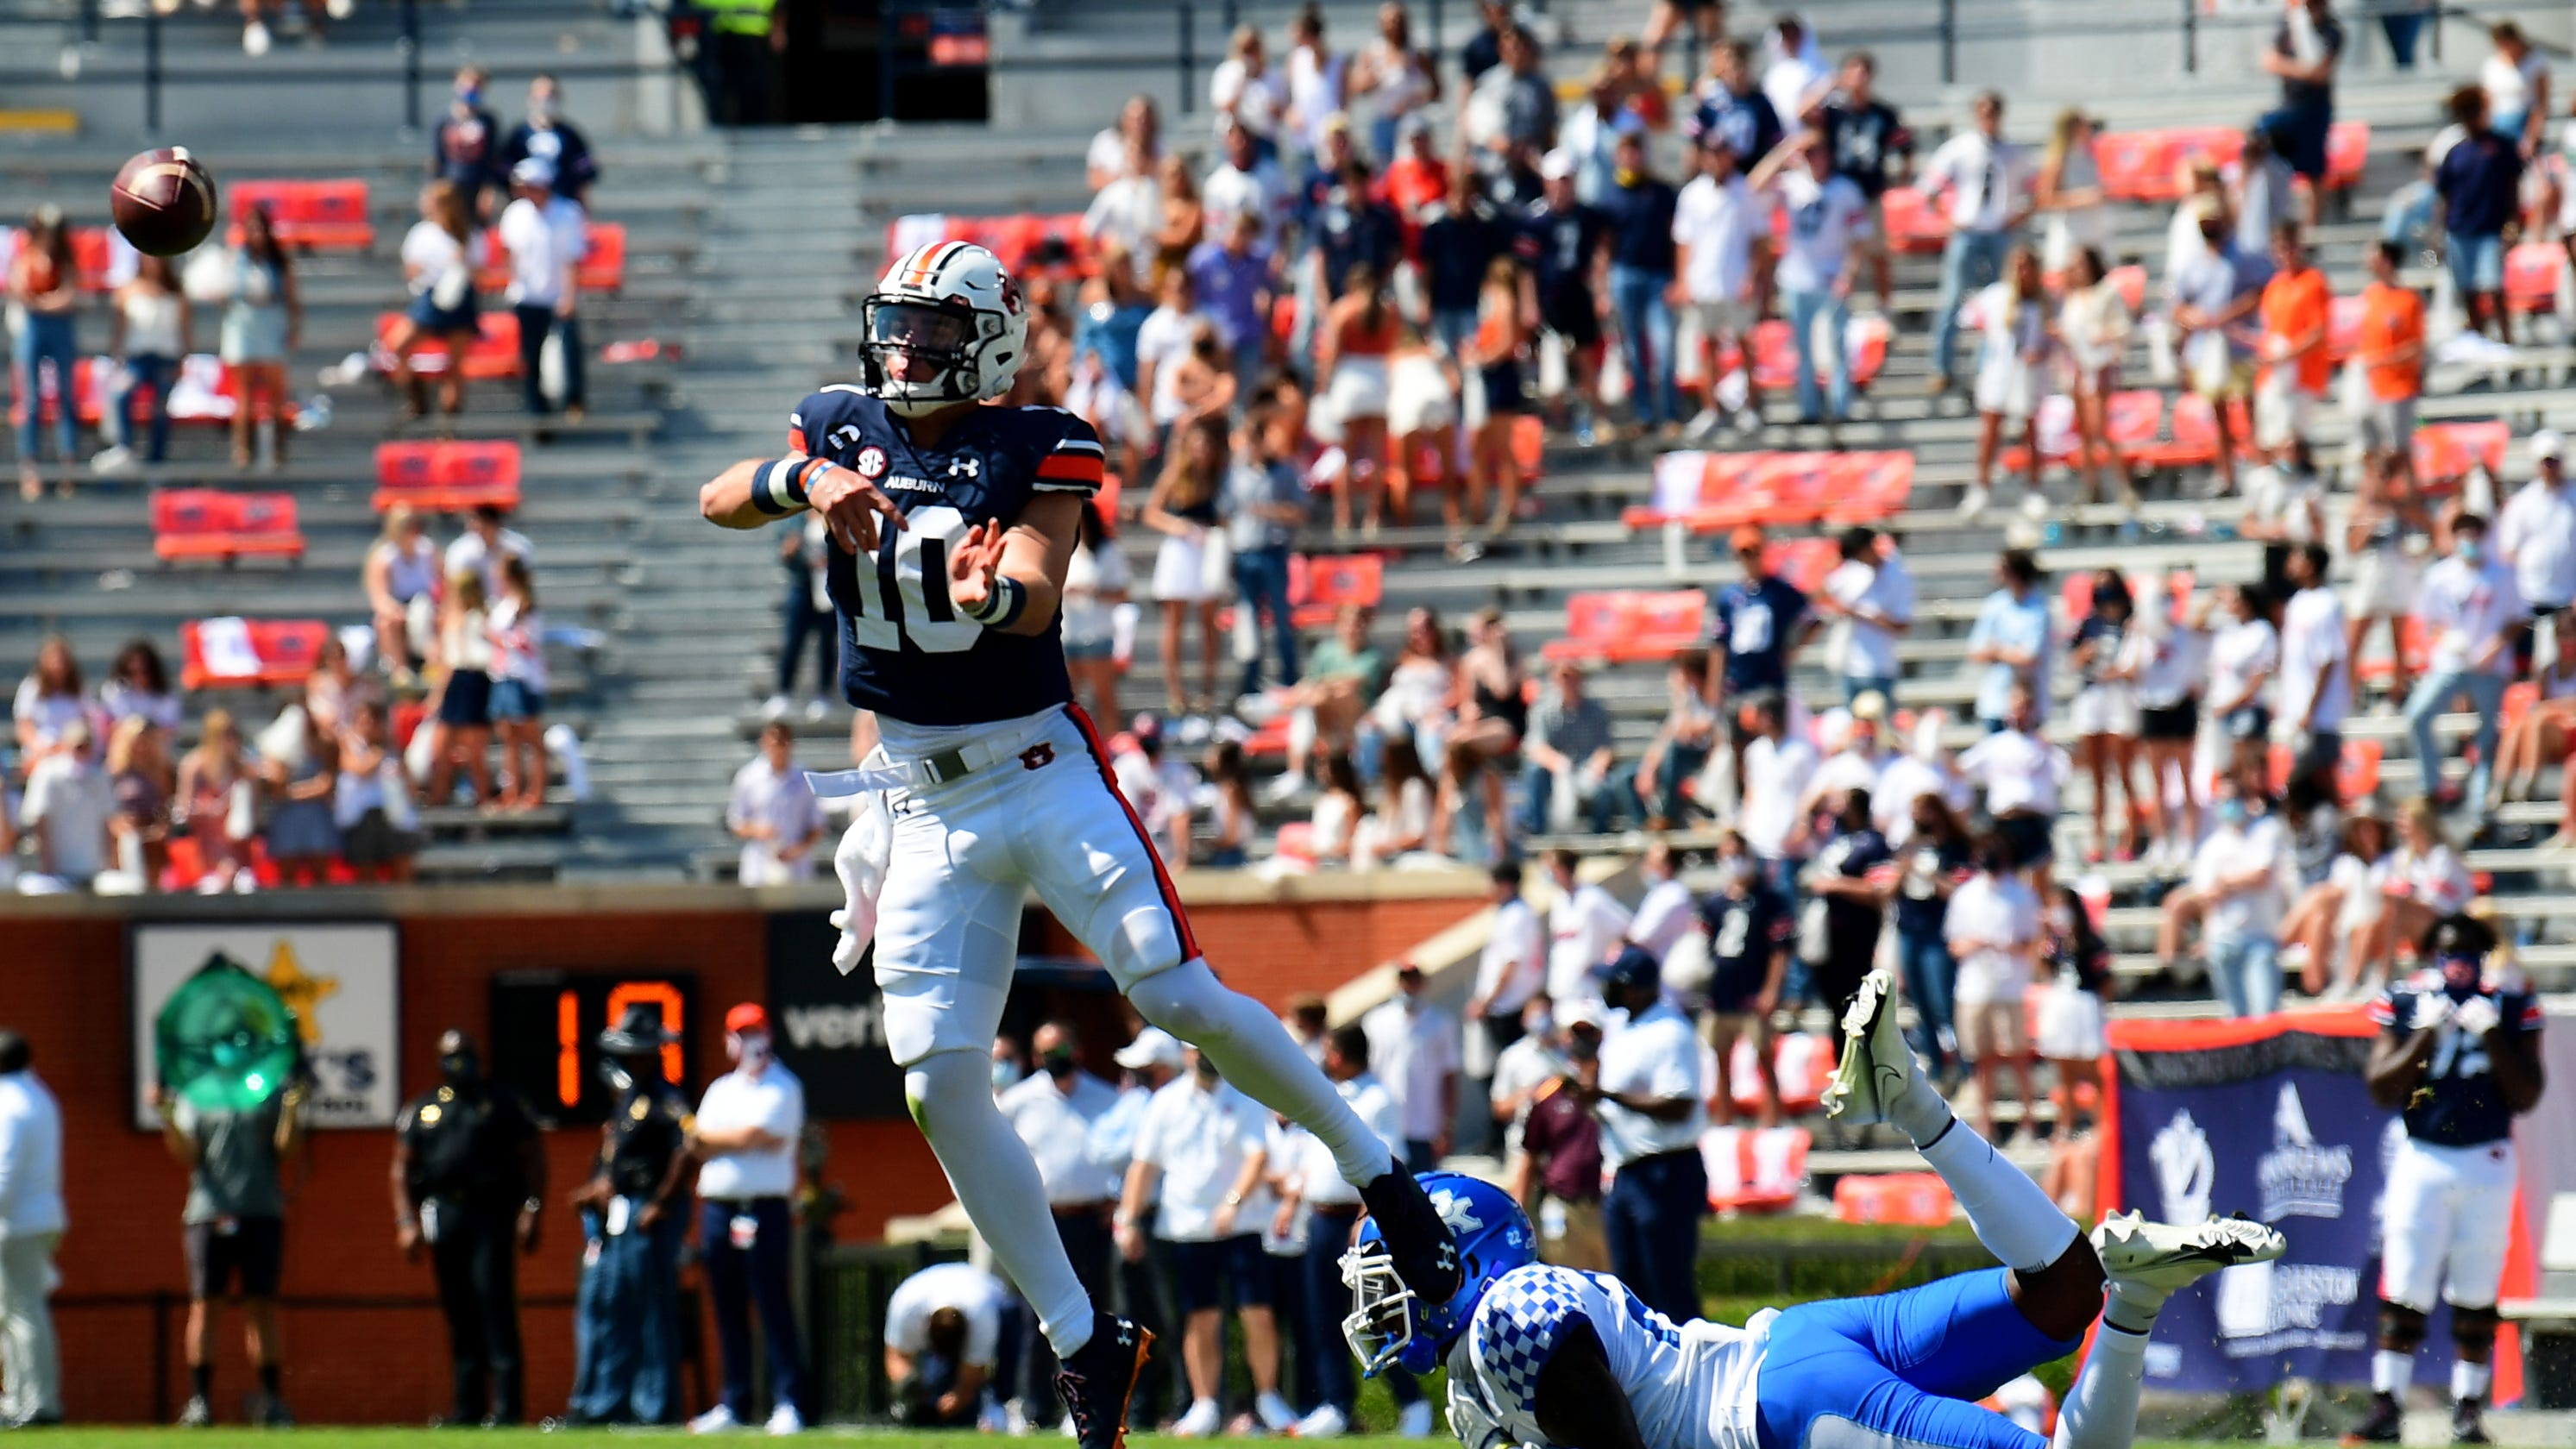 Auburn beats Kentucky in SEC opener with Bo Nix impressing